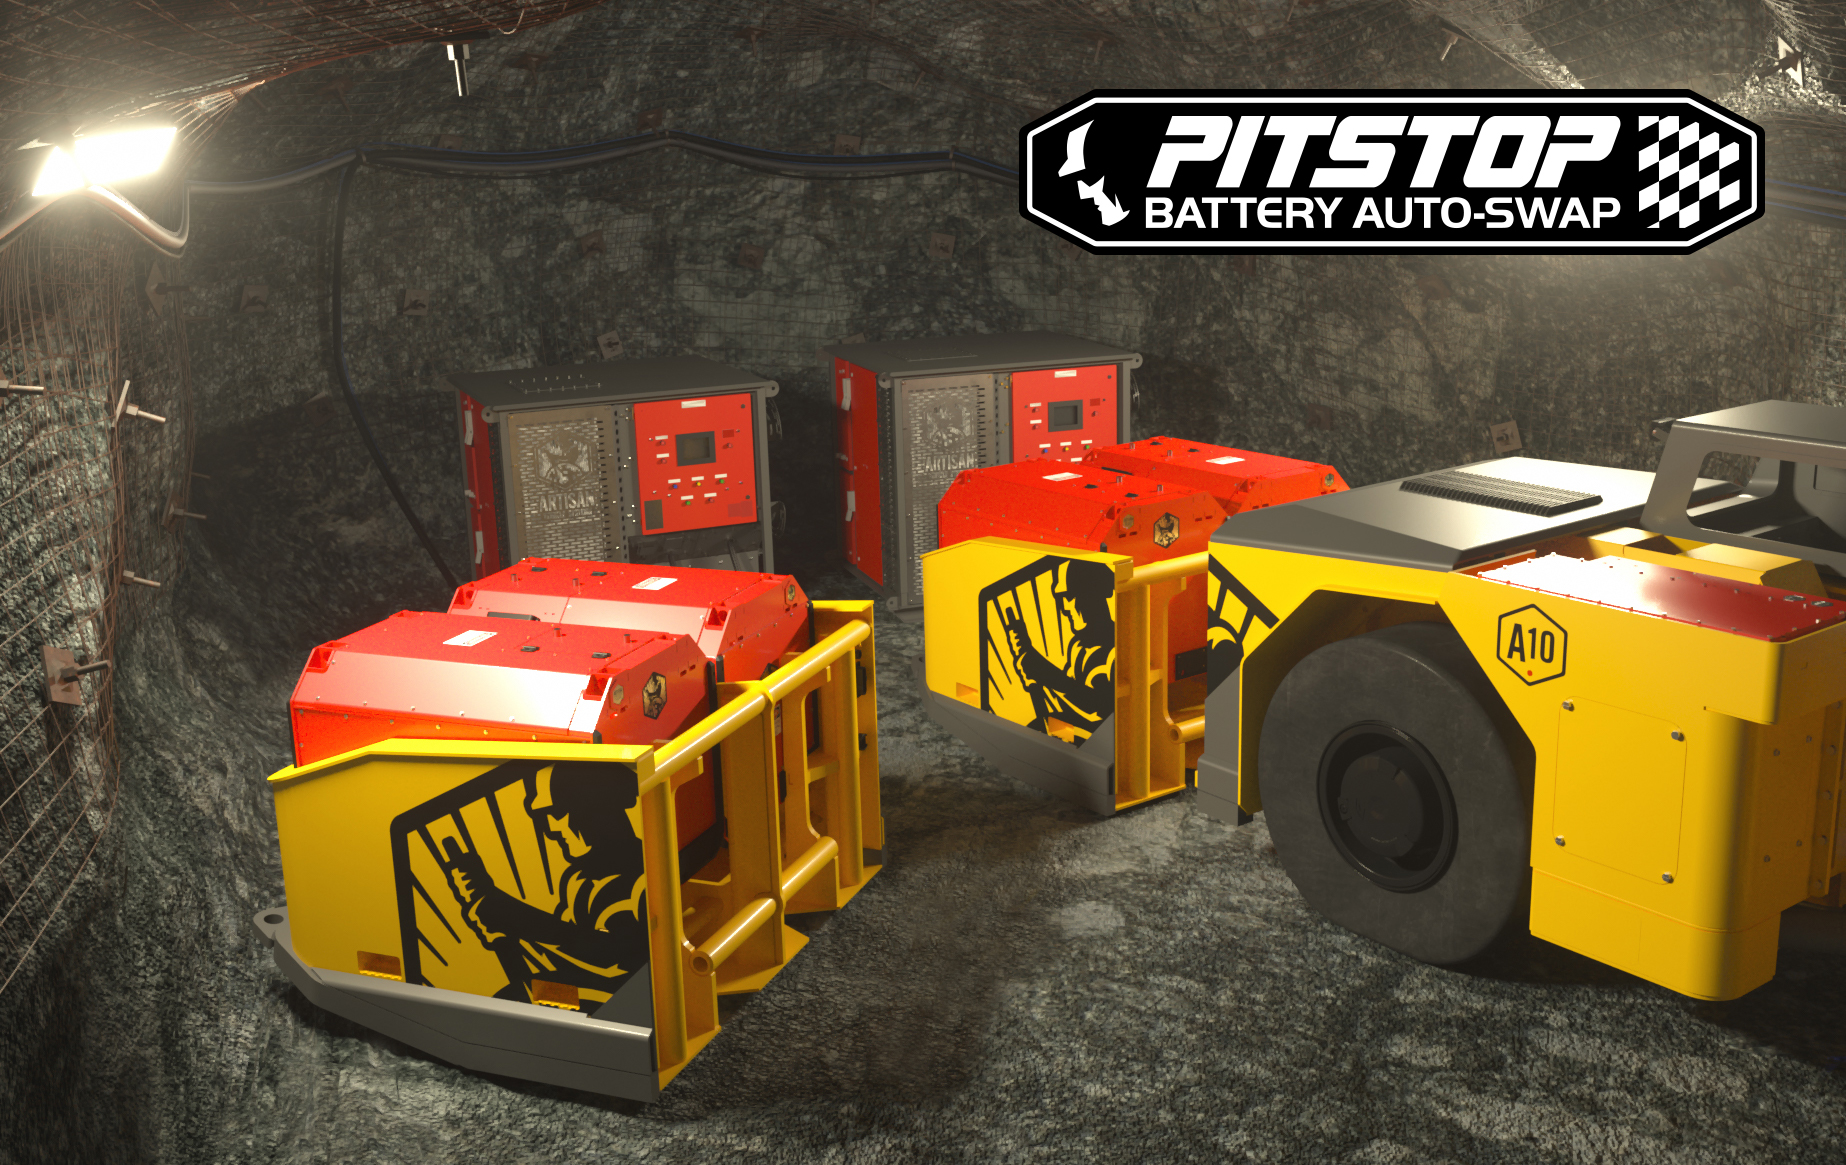 Artisan_Pitstop_BATTERY_AUTO-SWAP